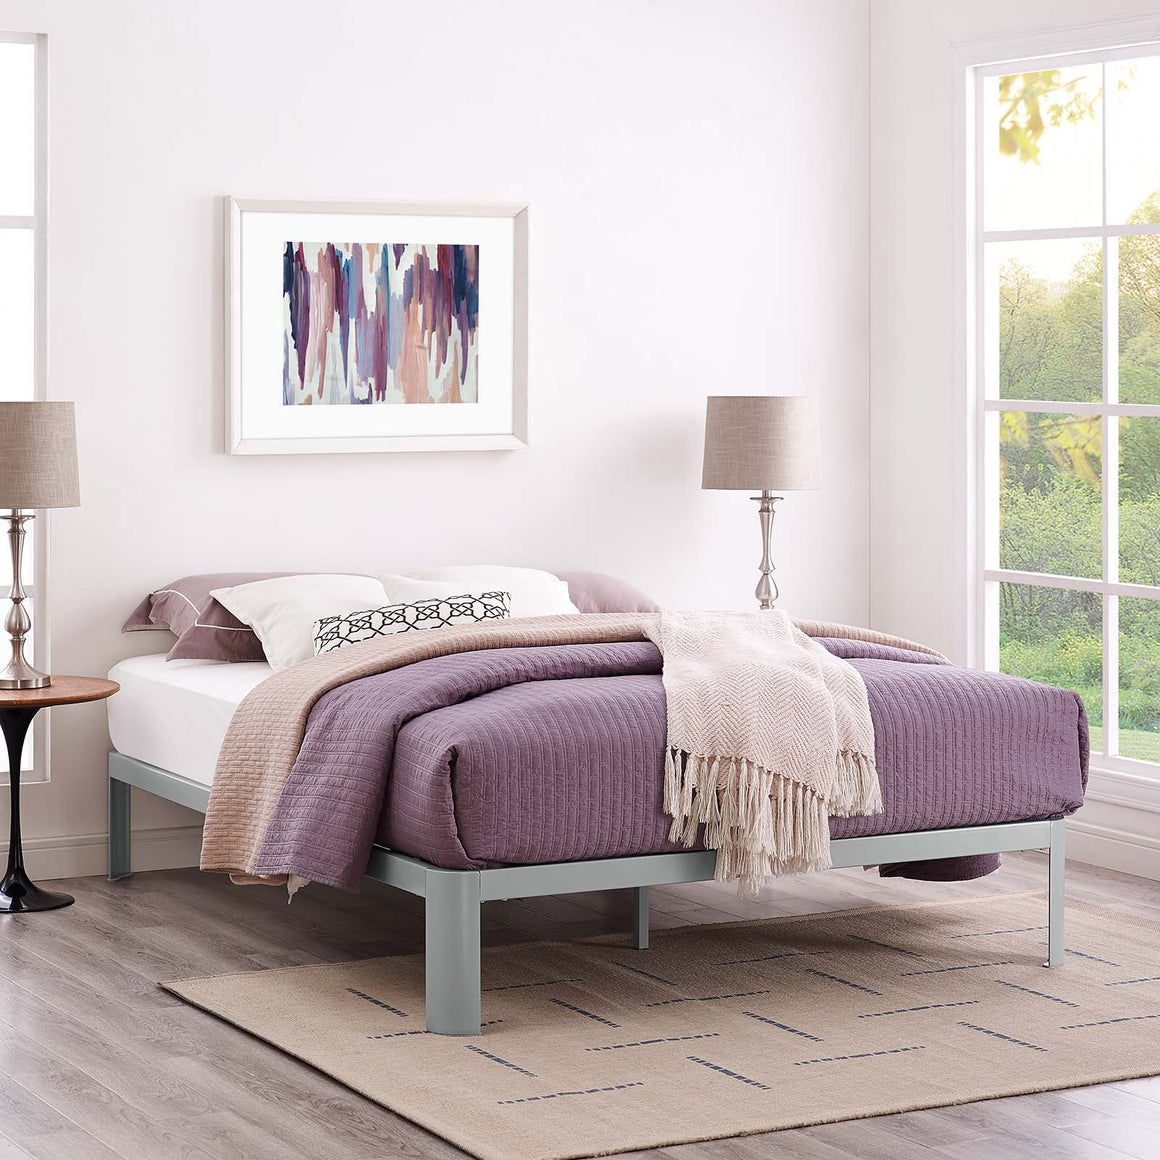 Corinne Full Bed Frame